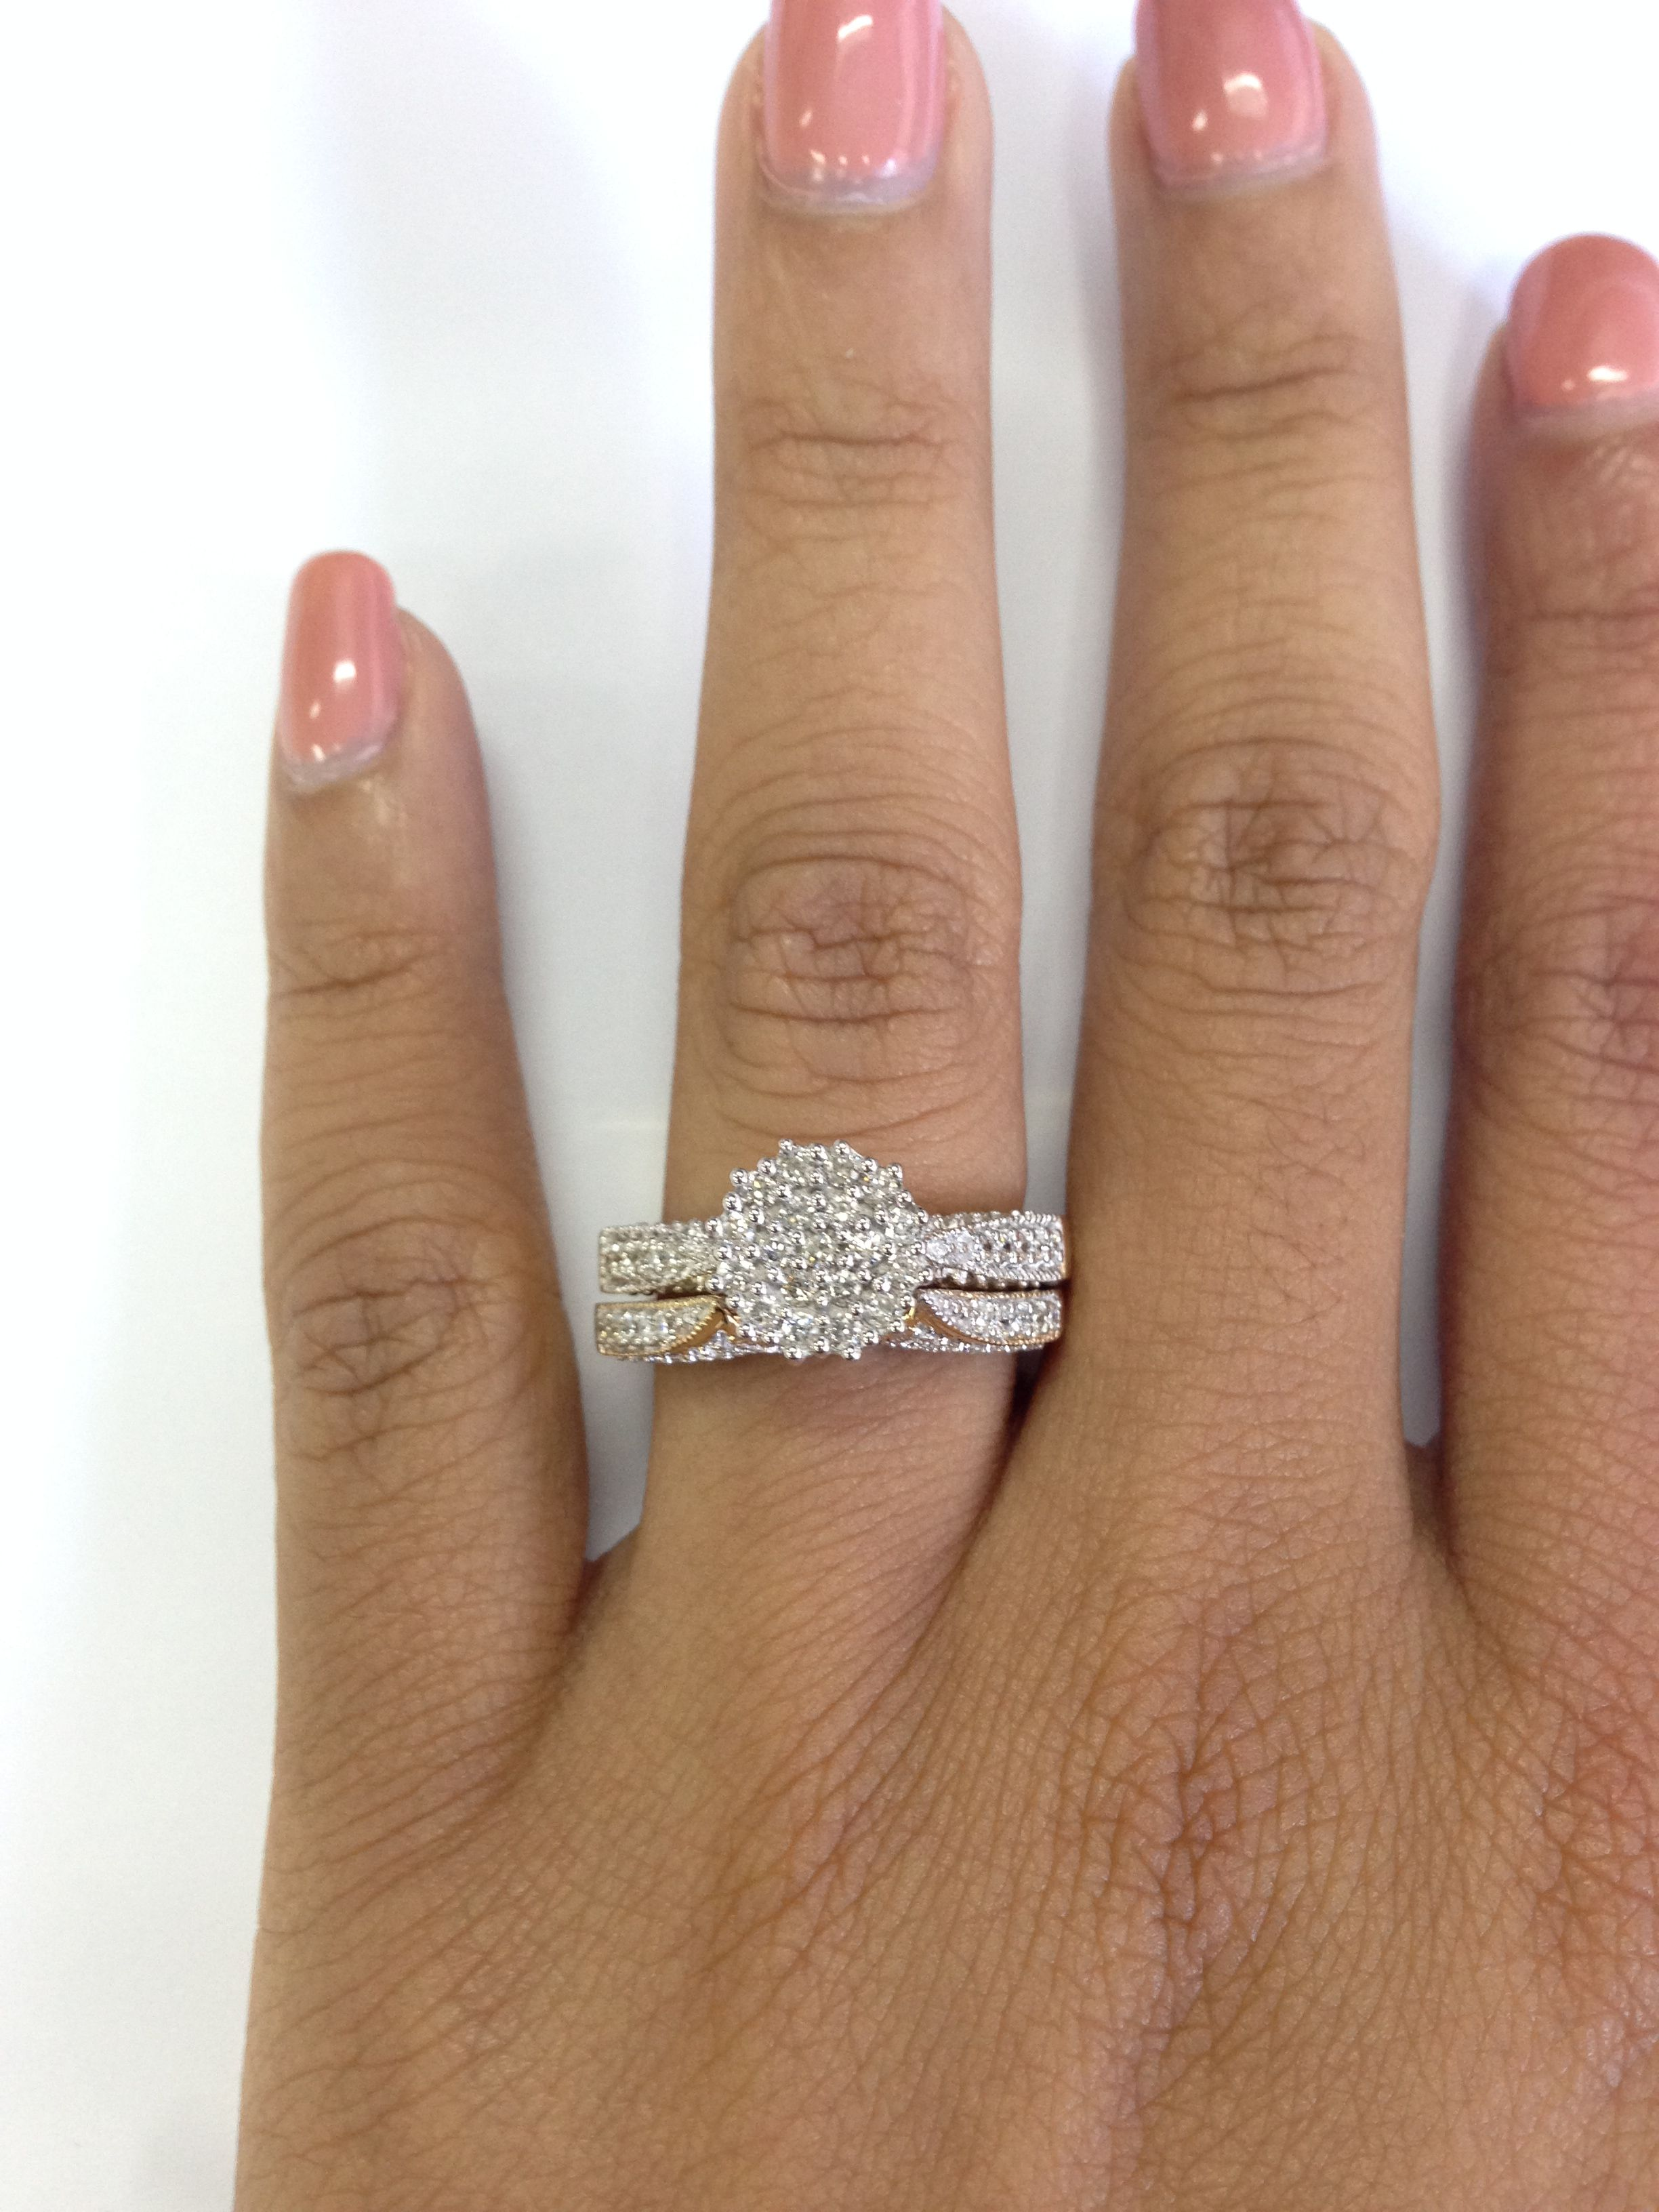 Rings On Hand Bridal Set Br103y Engagement Ring And Ladies